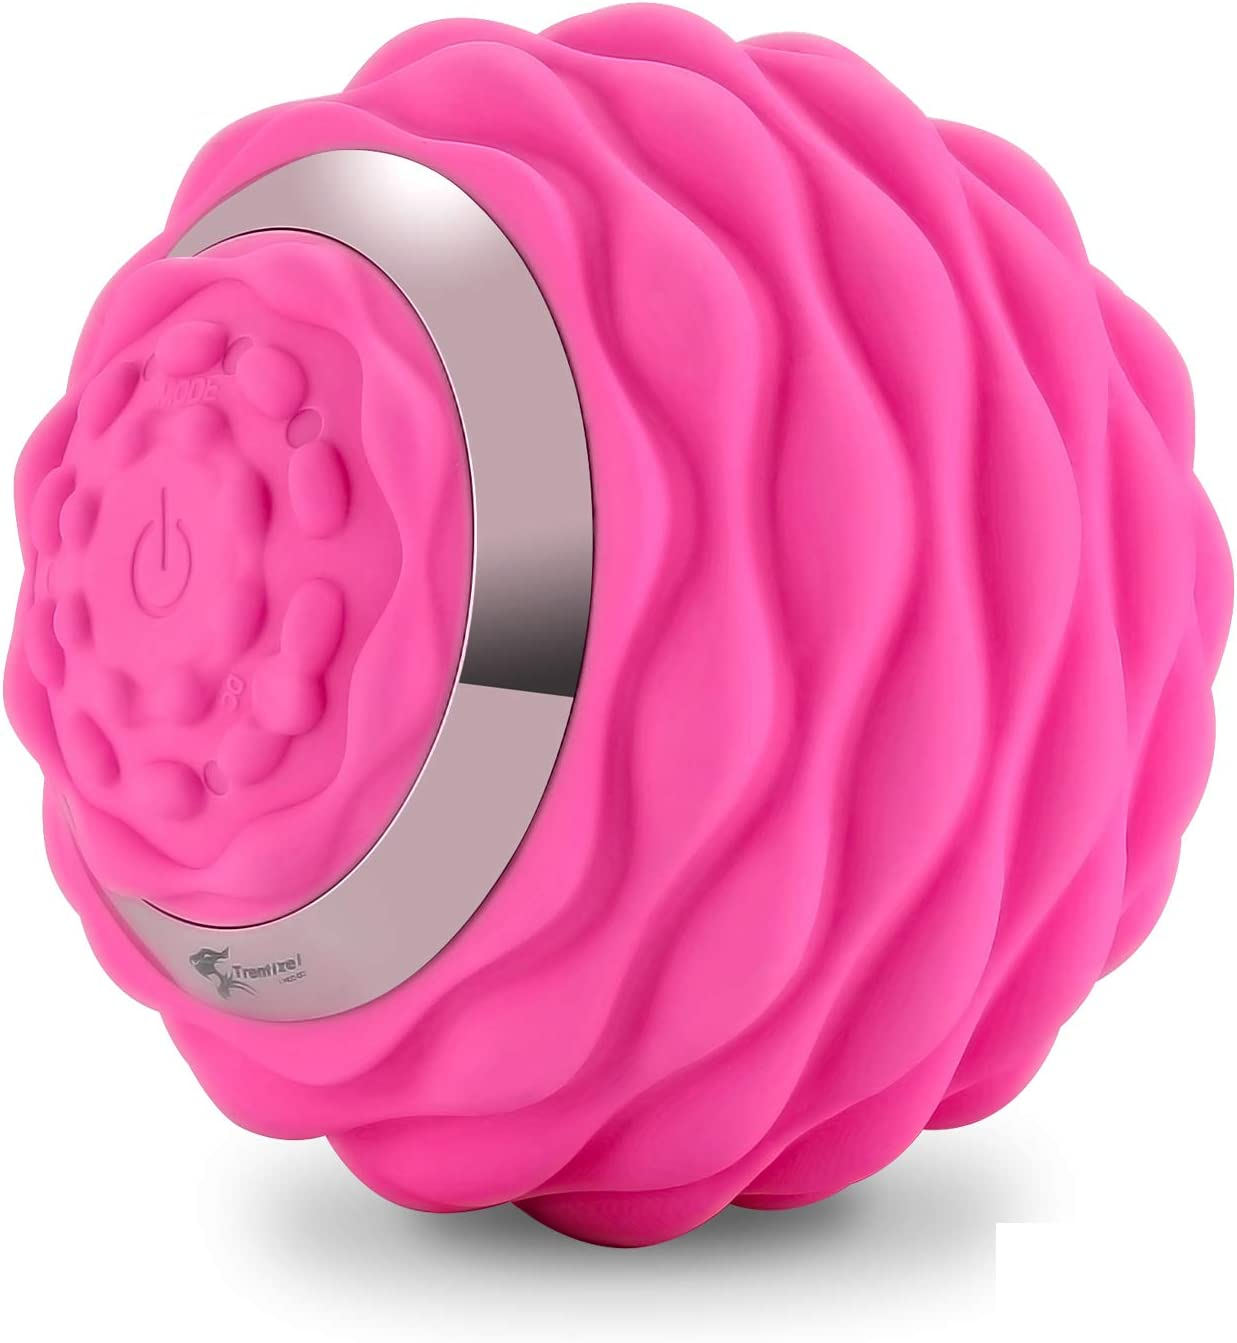 Deep Tissue Vibrating Limited time for free shipping Massage 4-Speed Fitne Ball High-Intensity Albuquerque Mall